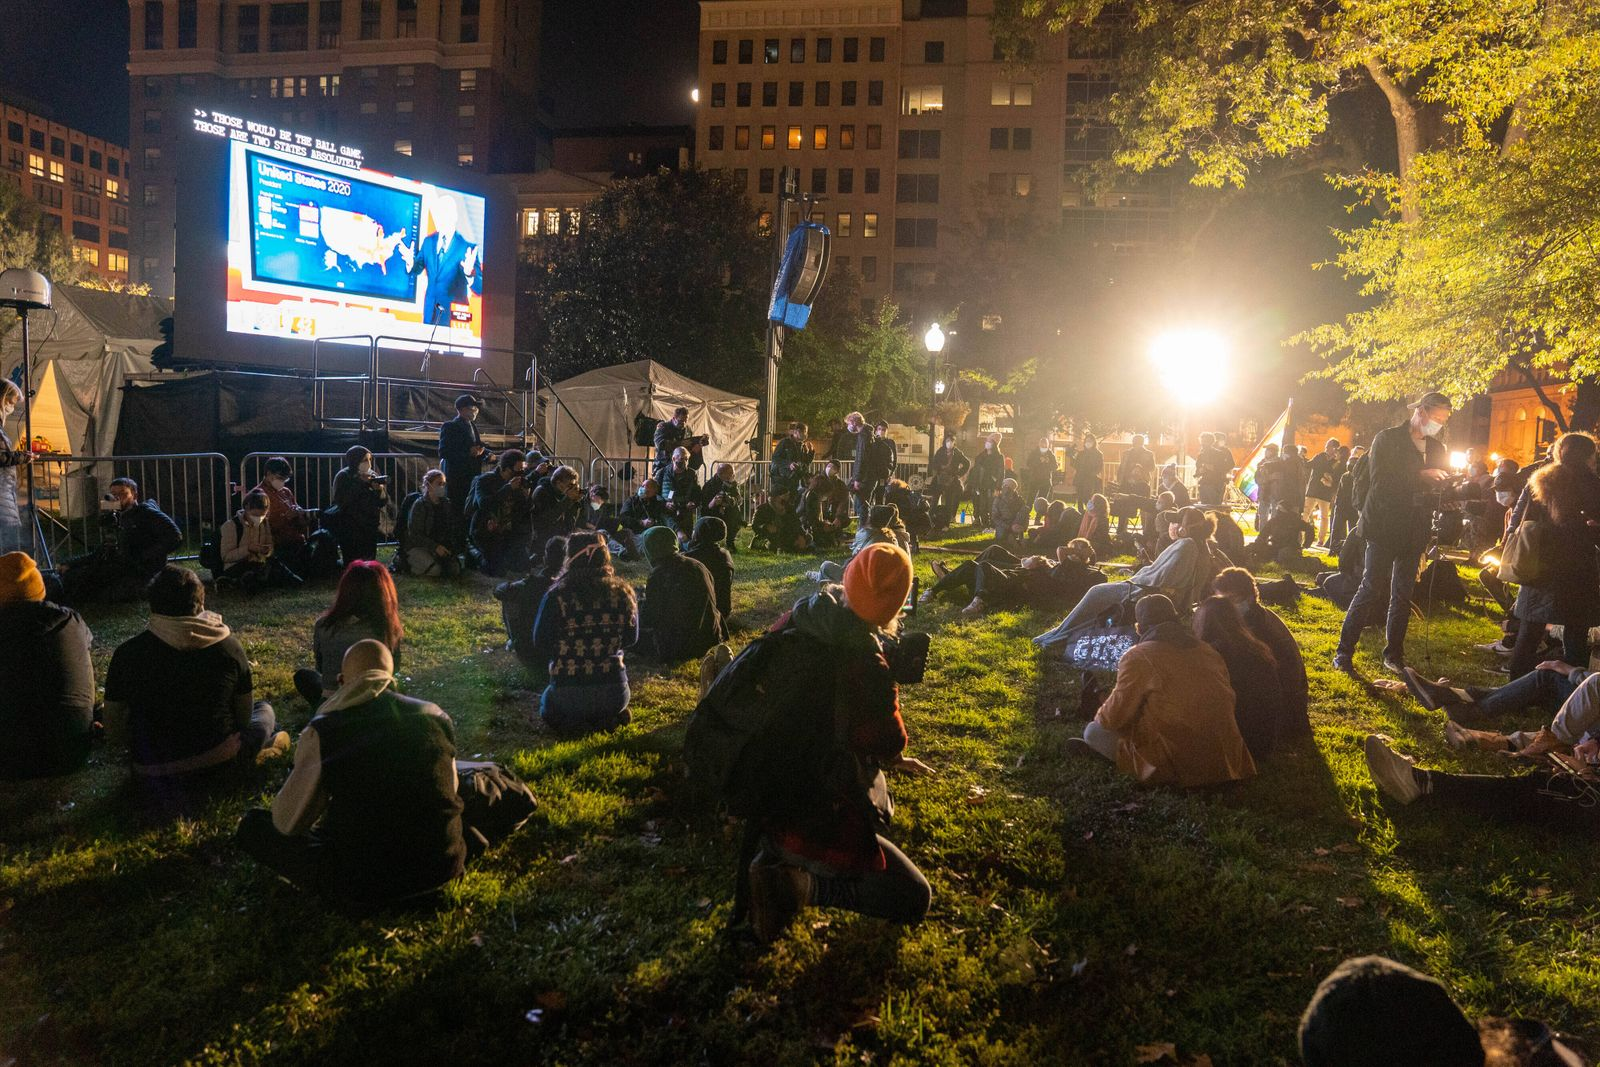 Watch party goers gather at McPherson Square near the White House on election night in Washington, DC on Tuesday, Novem